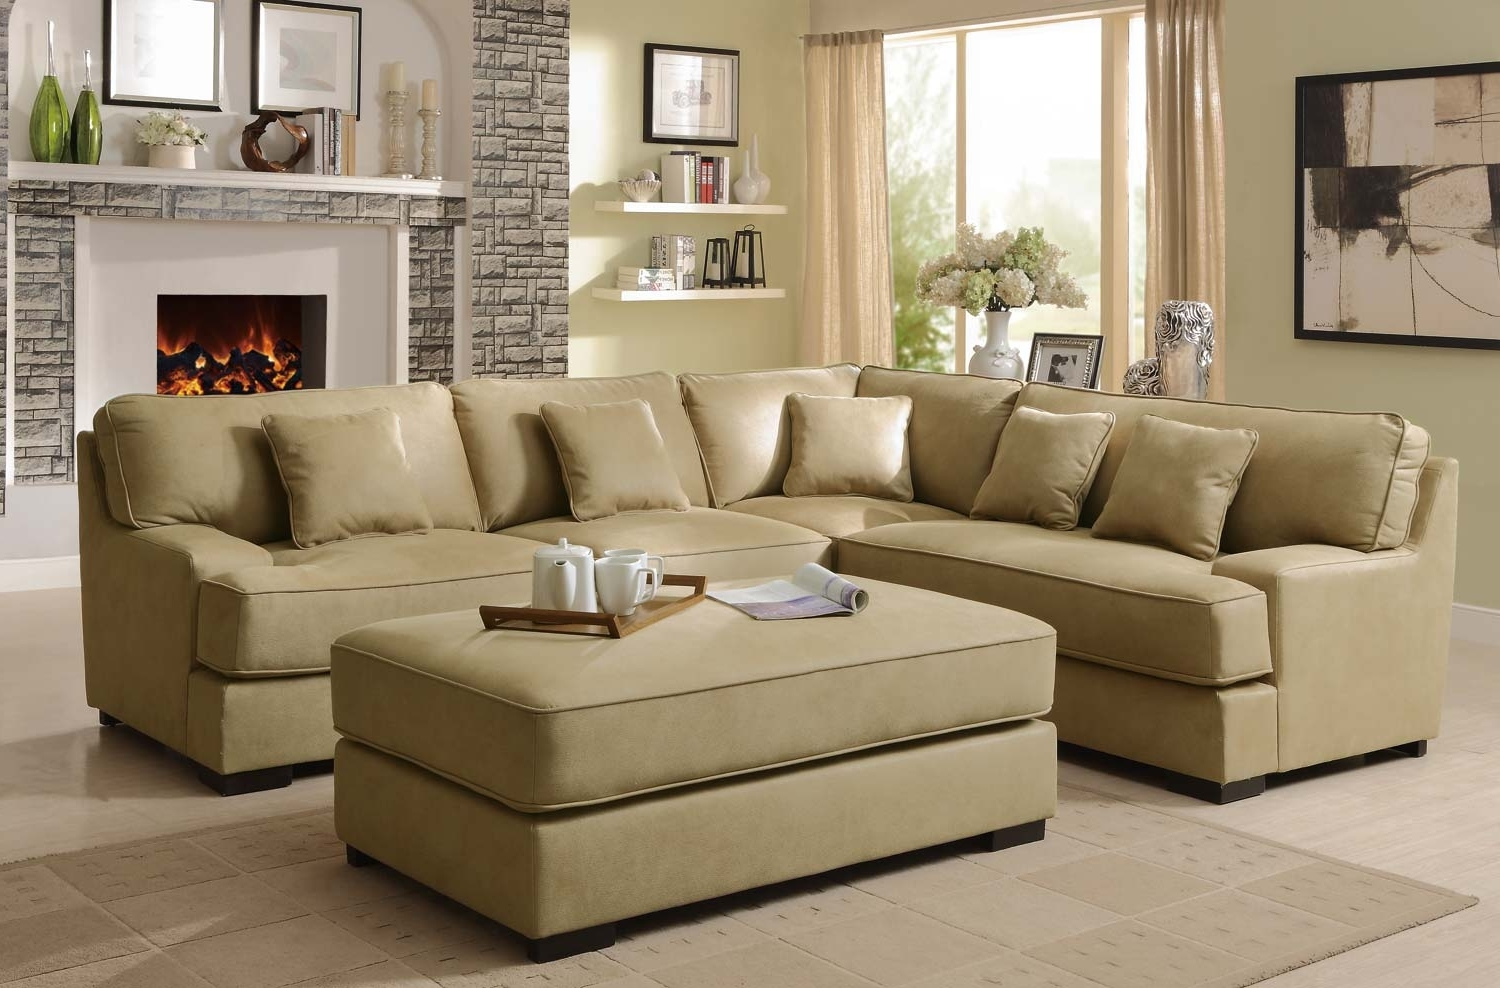 Most Recently Released Sectional Sofa Design: Amazing Beige Sectional Sofas Beige Leather Intended For Beige Sectional Sofas (View 16 of 20)